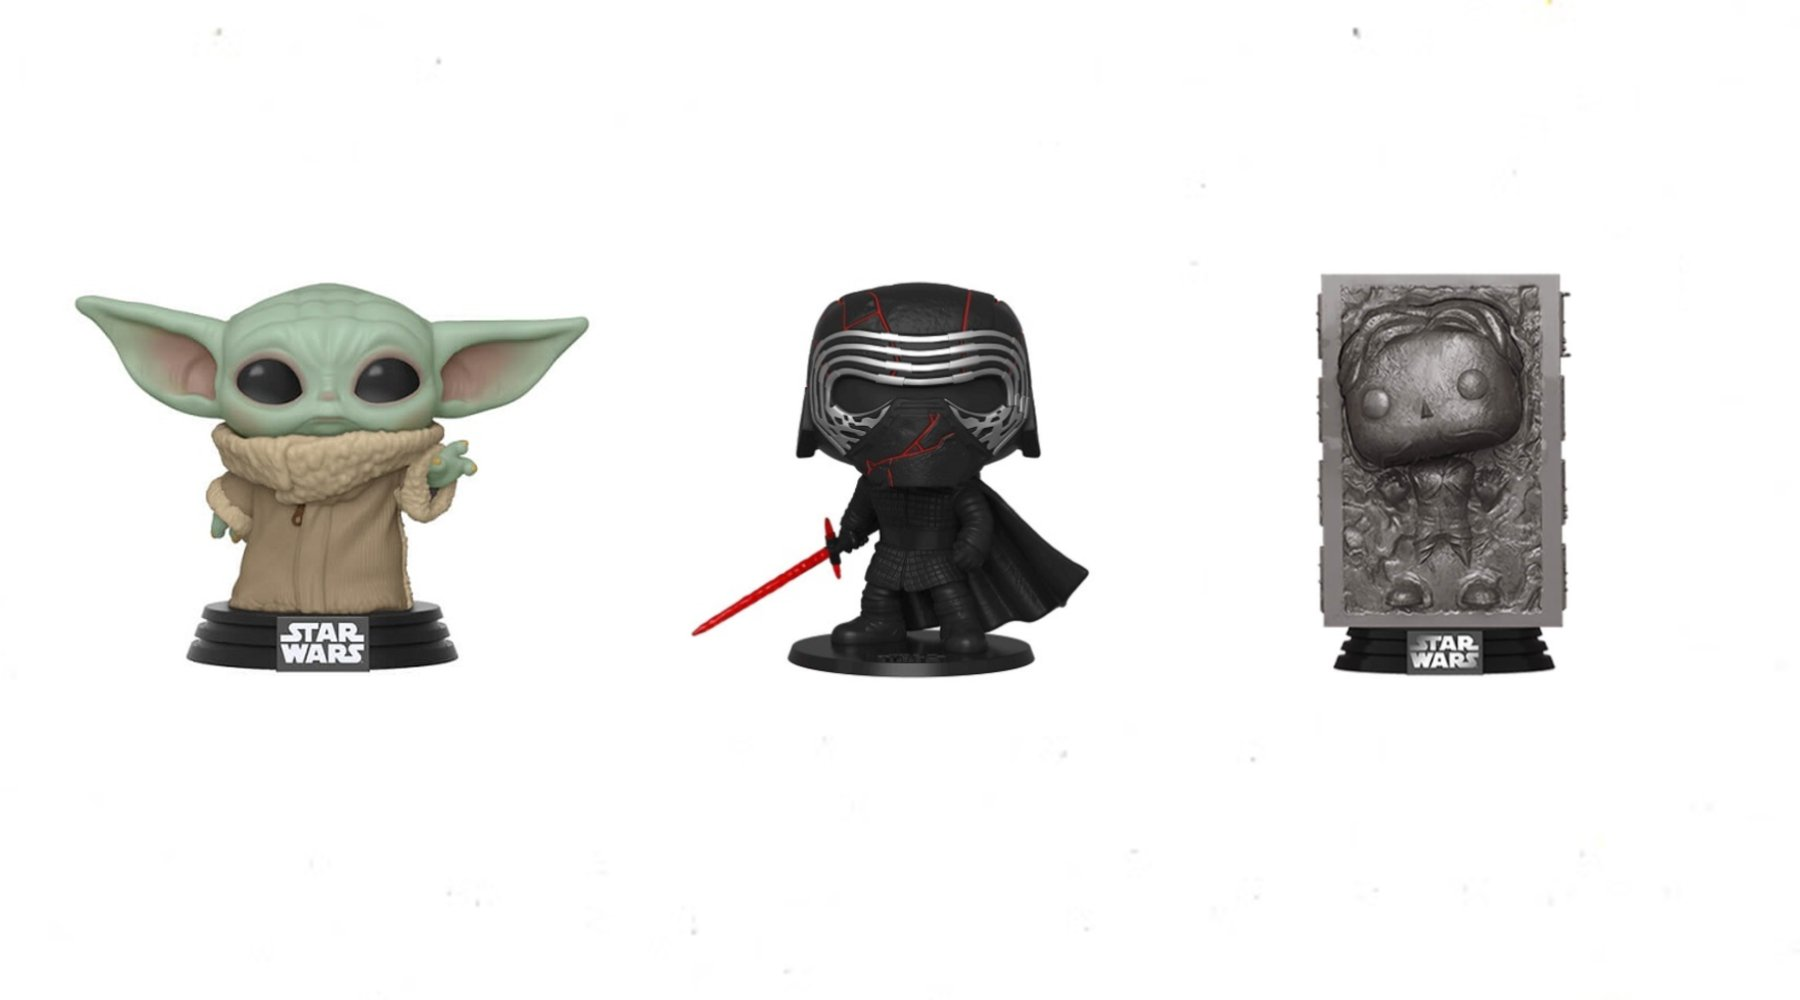 The Best Star Wars Funko Pop Vinyls Ranked